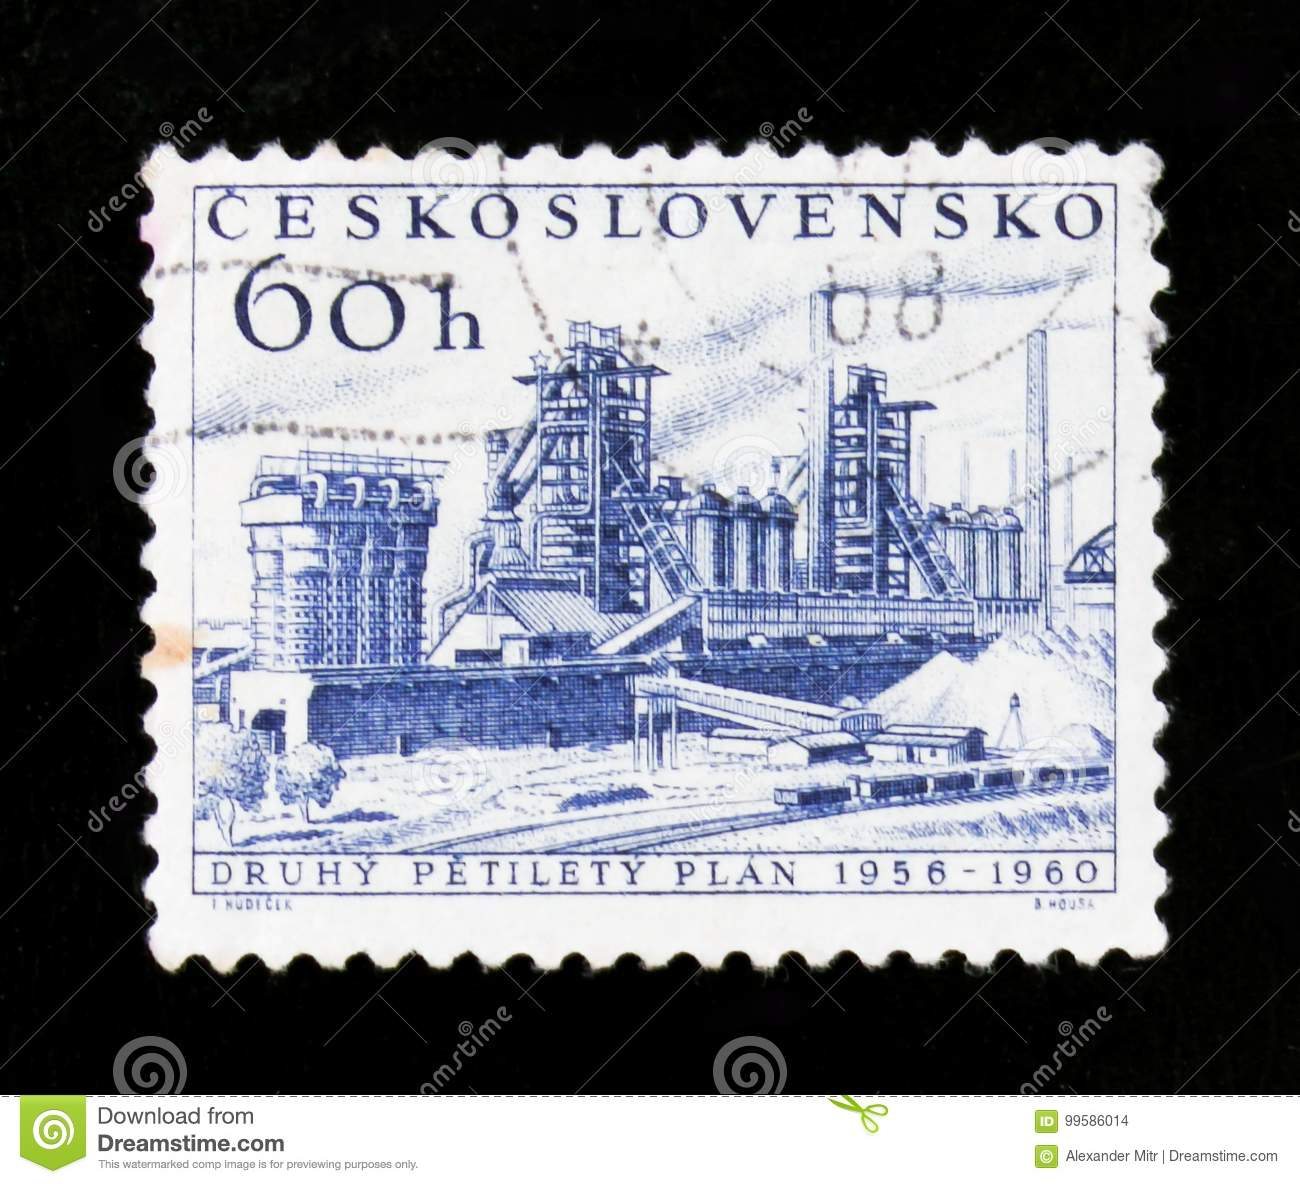 MOSCOW, RUSSIA - JUNE 20, 2017: A stamp printed in Czechoslovakia shows shows oil refinery; new five year plan, circa 1960